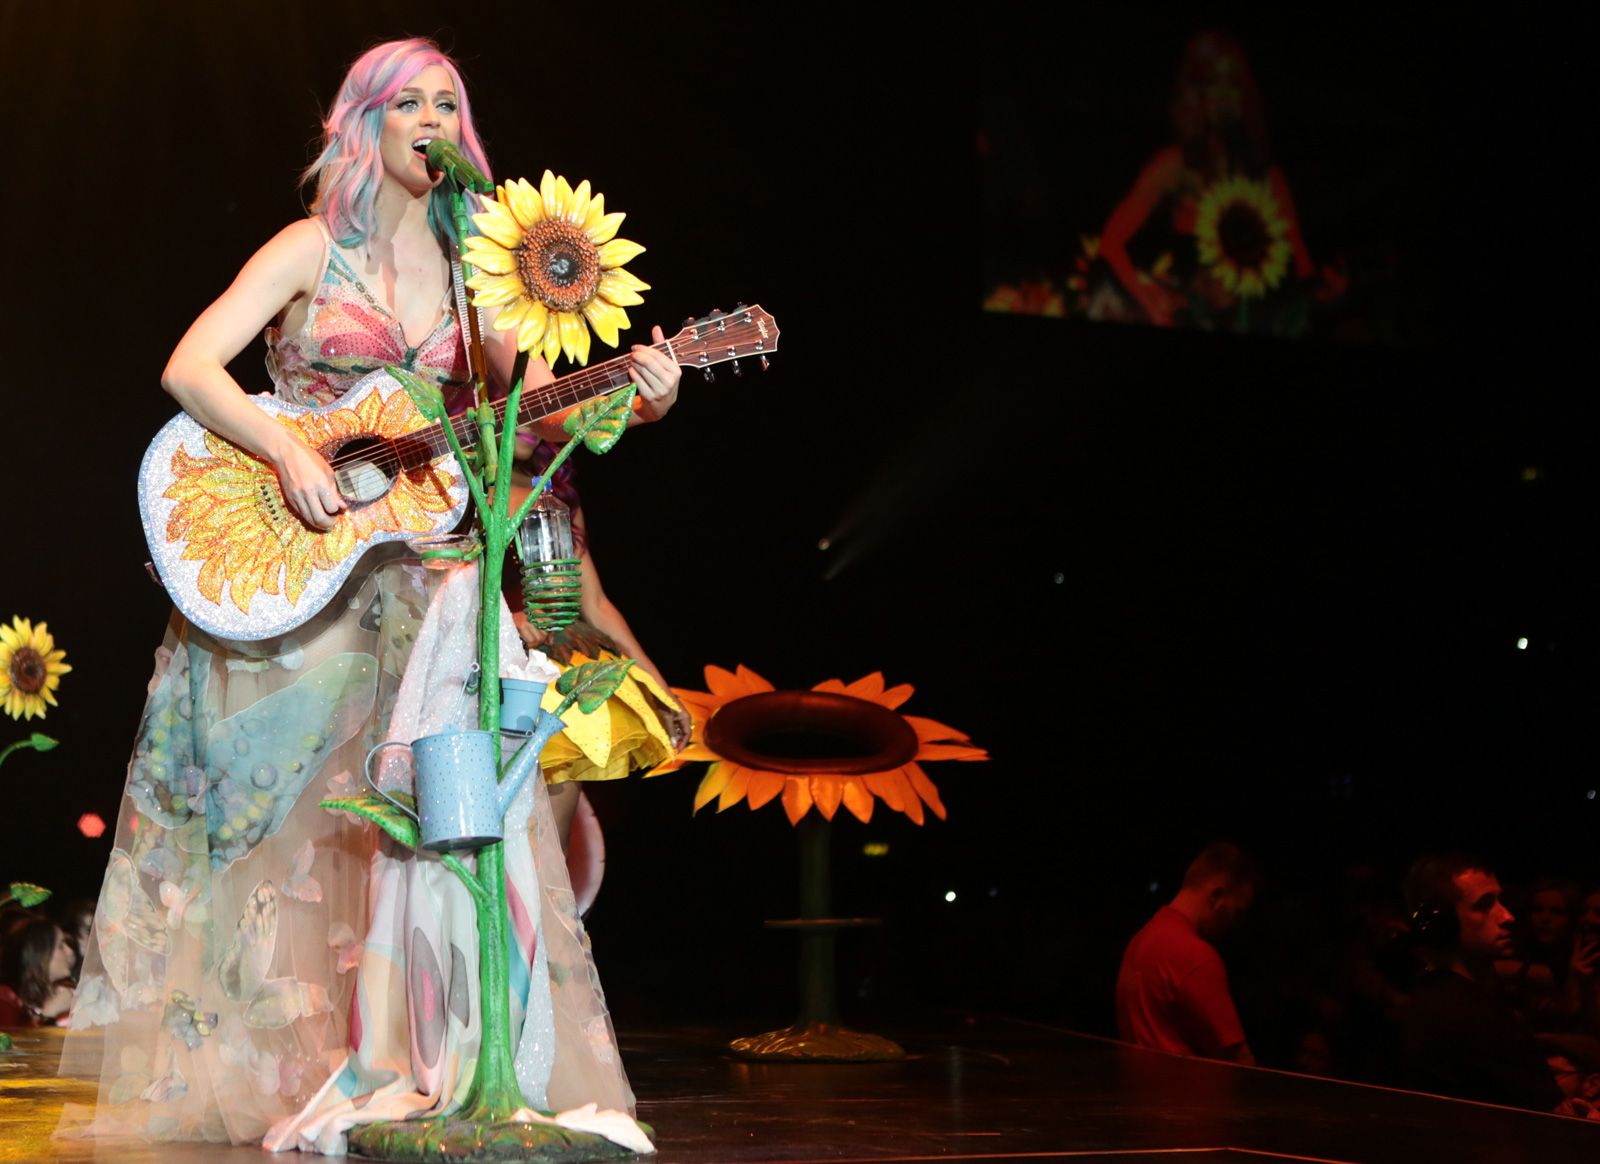 Katy Perry with rainbow strands